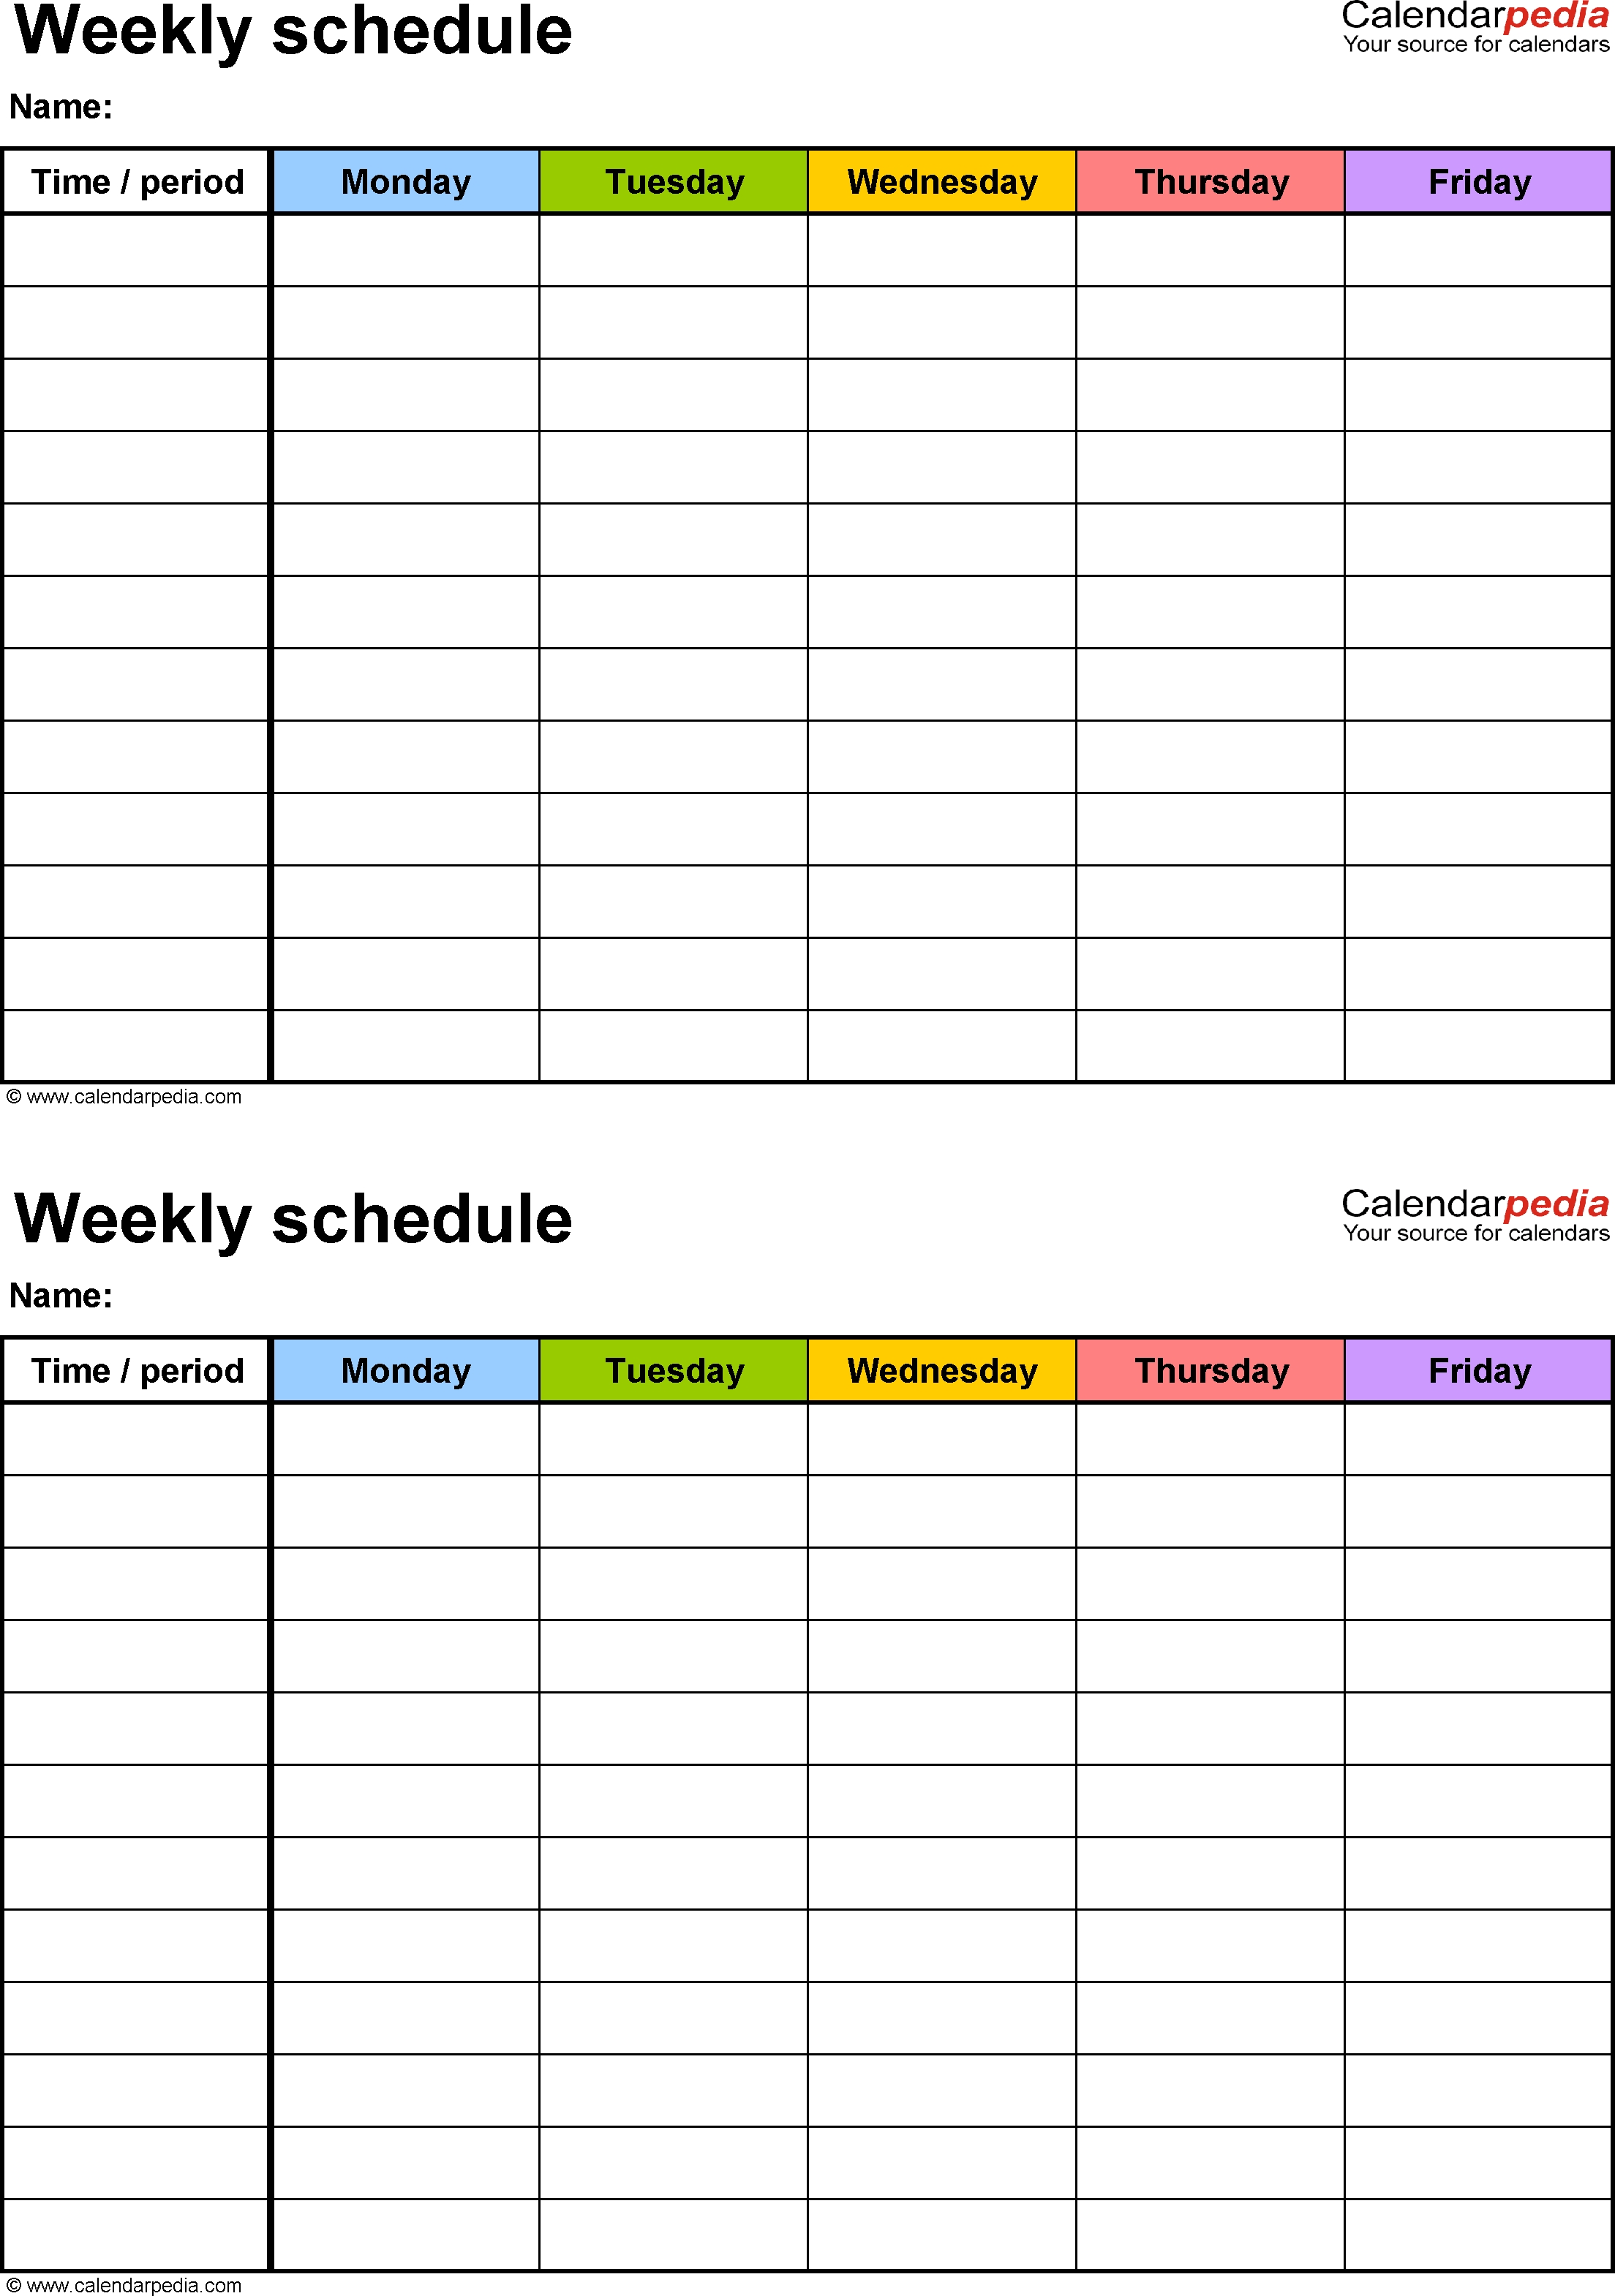 Free Weekly Schedule Templates For Excel - 18 Templates pertaining to Excel Calendar Template 6 Weeks